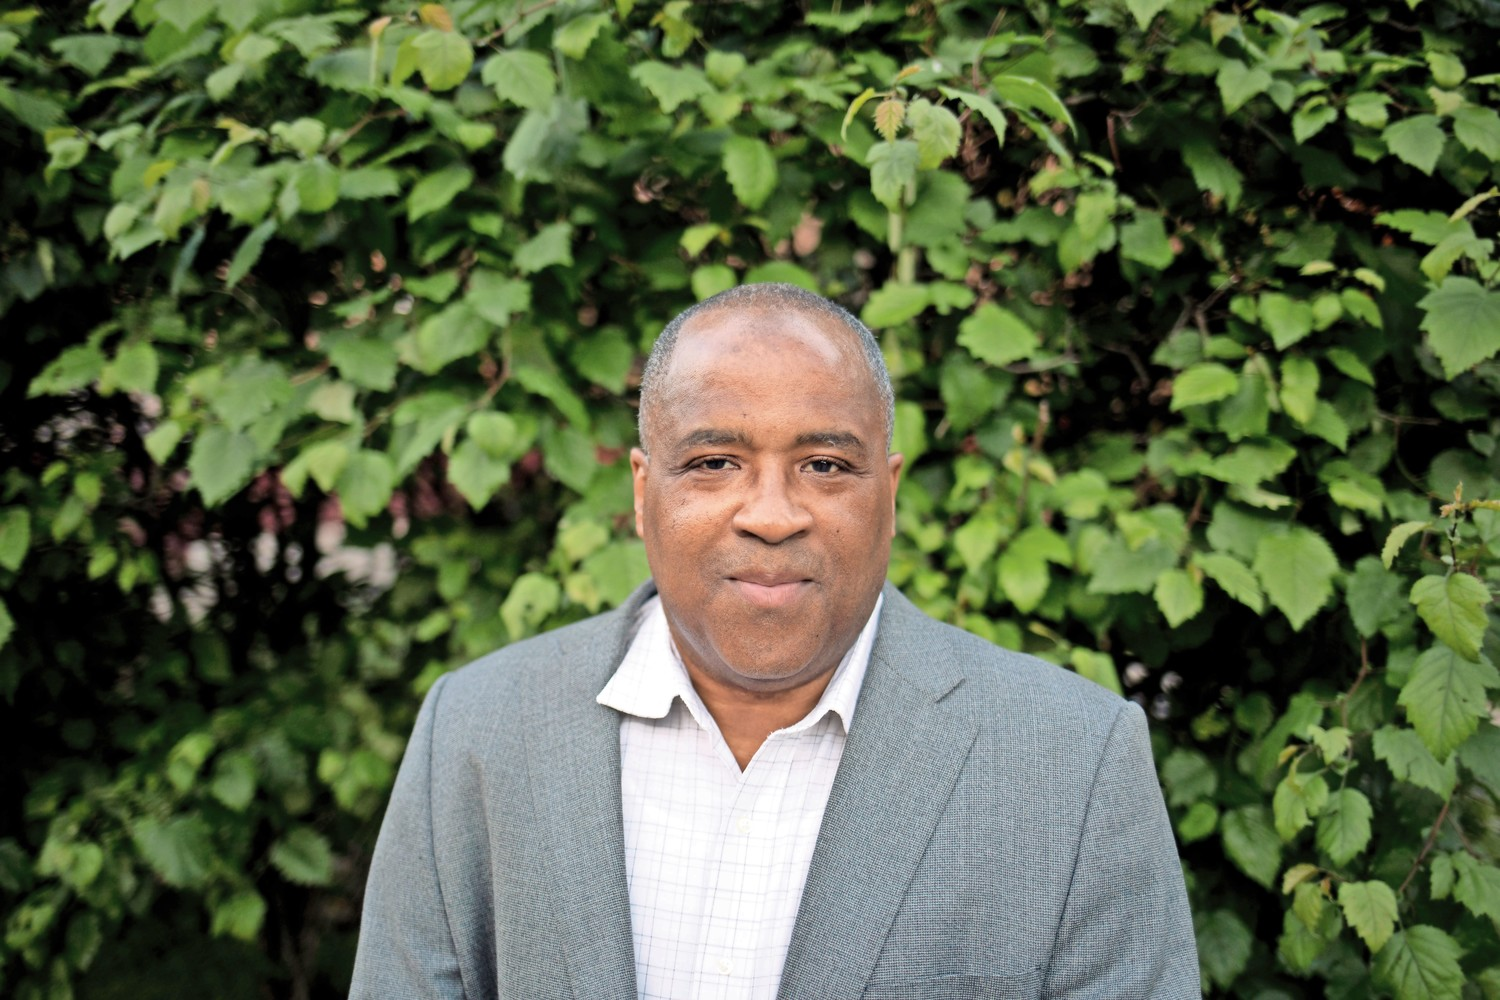 Tony Edwards has lived in Marble Hill Houses his whole life, and in the last several years, he has been actively working to improve conditions there. On May 26, he will lead a neighborhood clean-up to help get garbage off the streets.